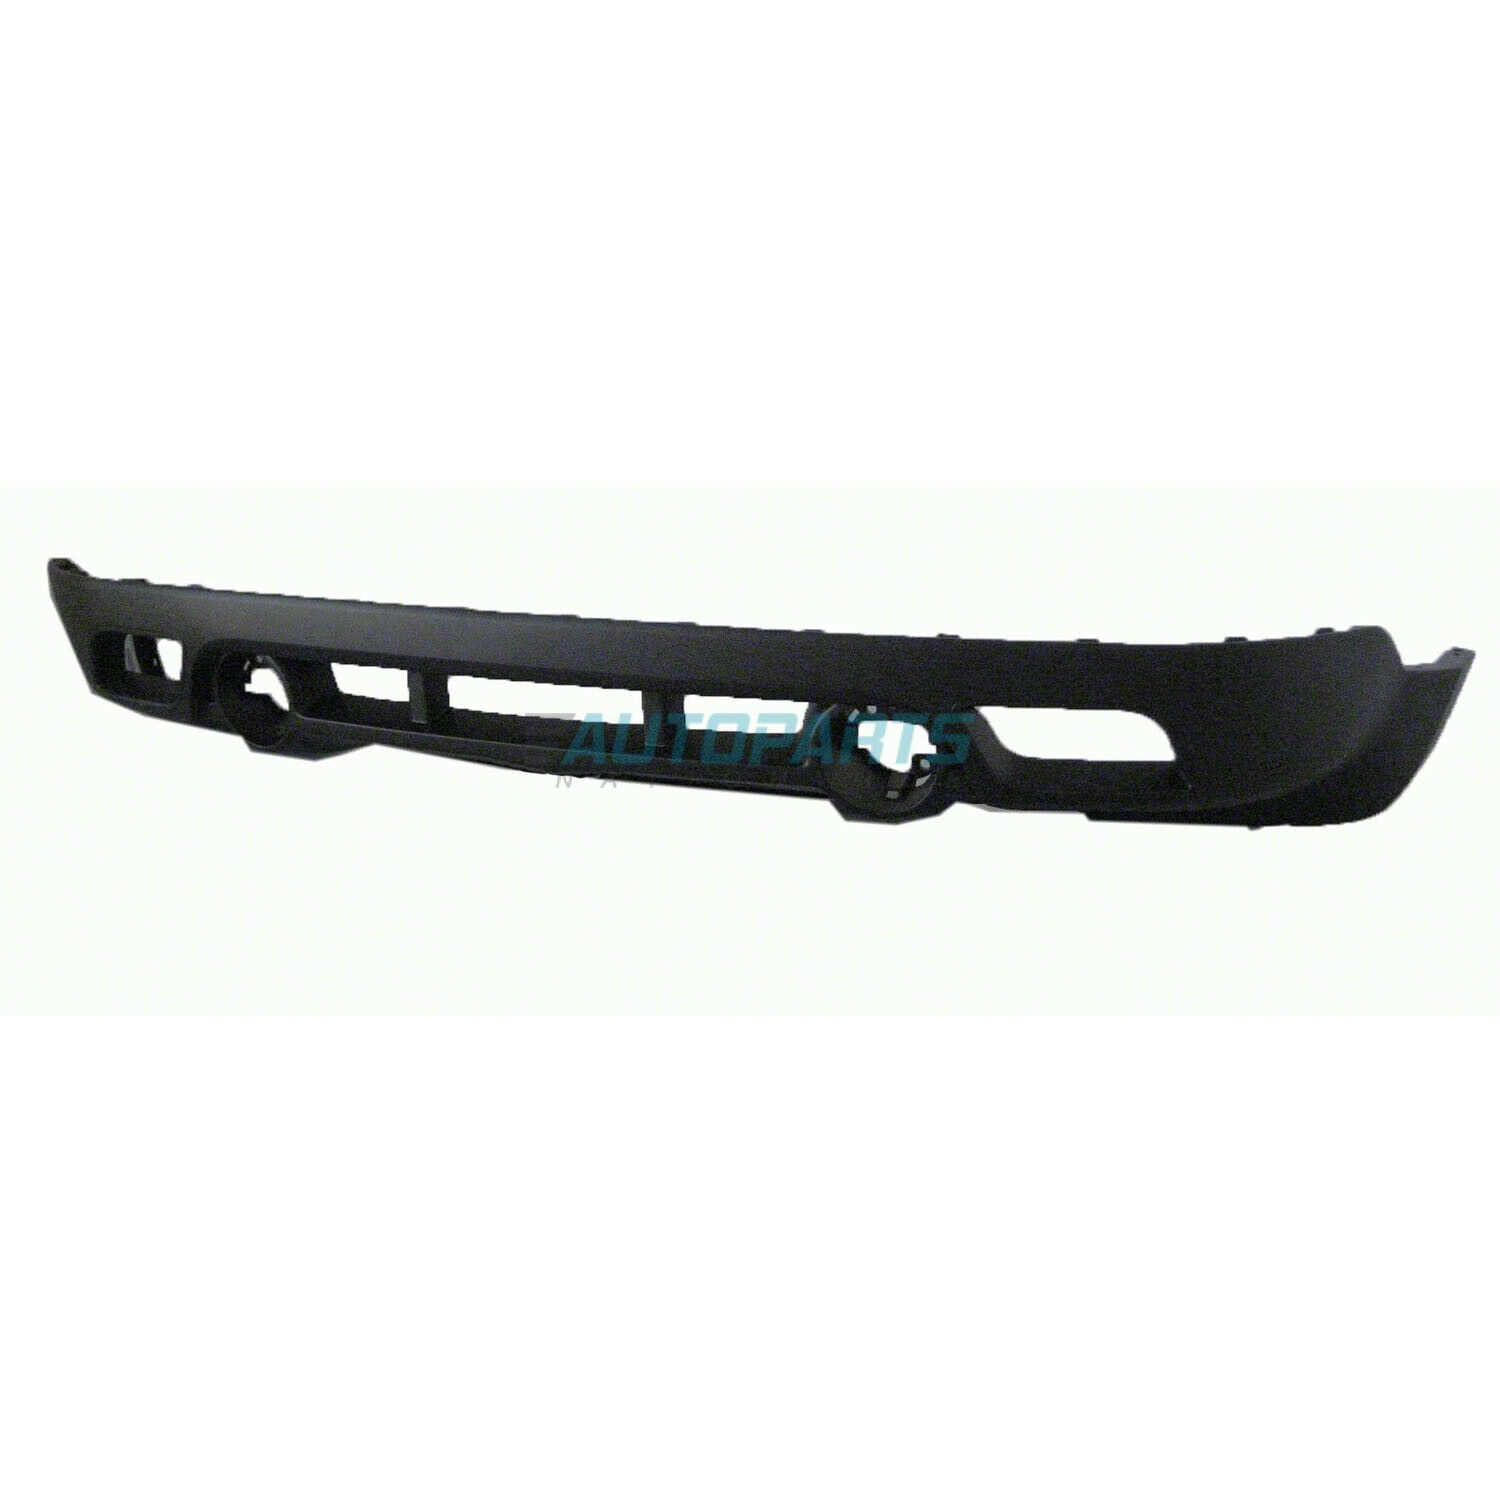 Front Lower Textured Bumper Cover With Tow Hooks Fits Patriot CH1015110